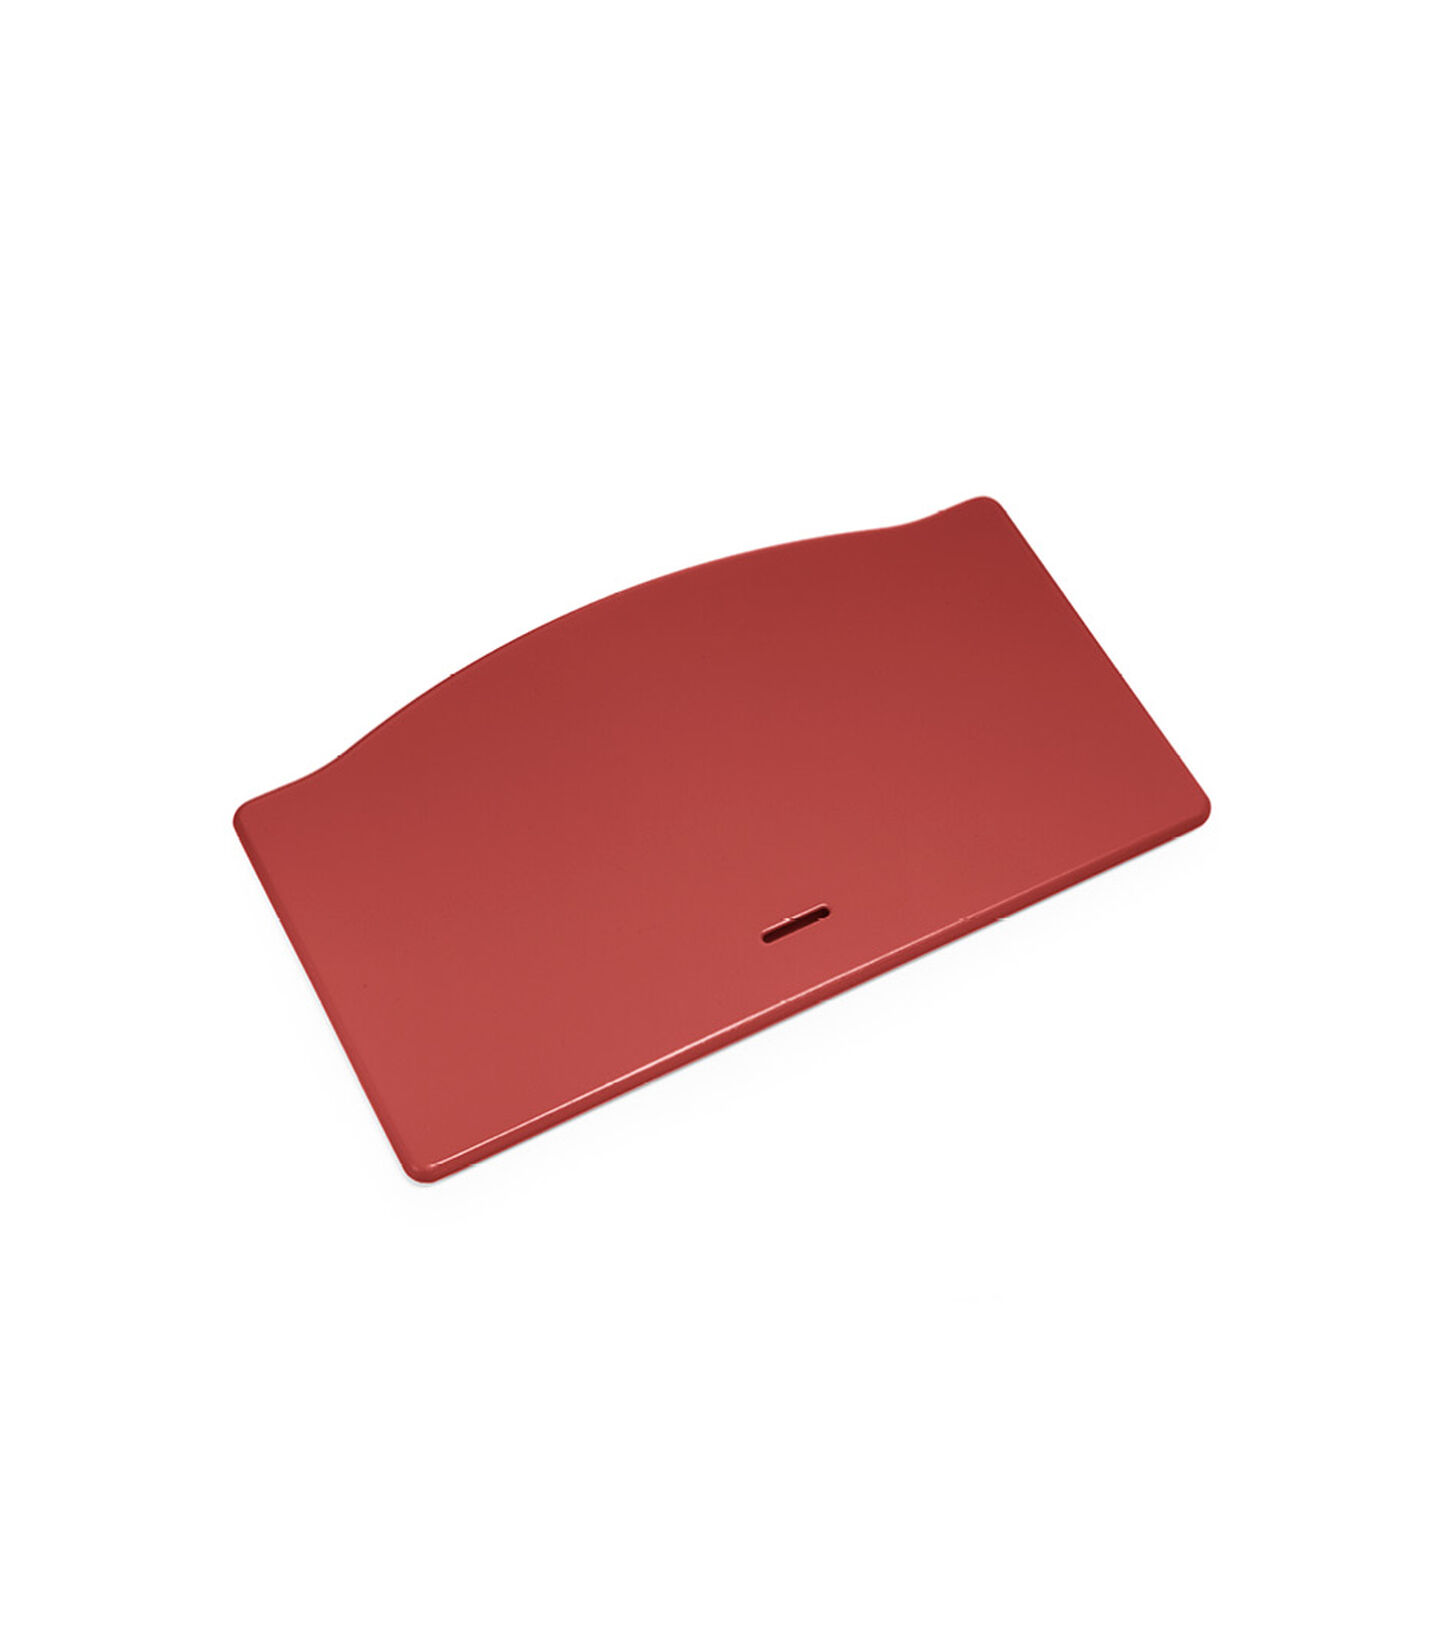 Tripp Trapp® SeggiolinoPlate Warm Red, Warm Red, mainview view 2